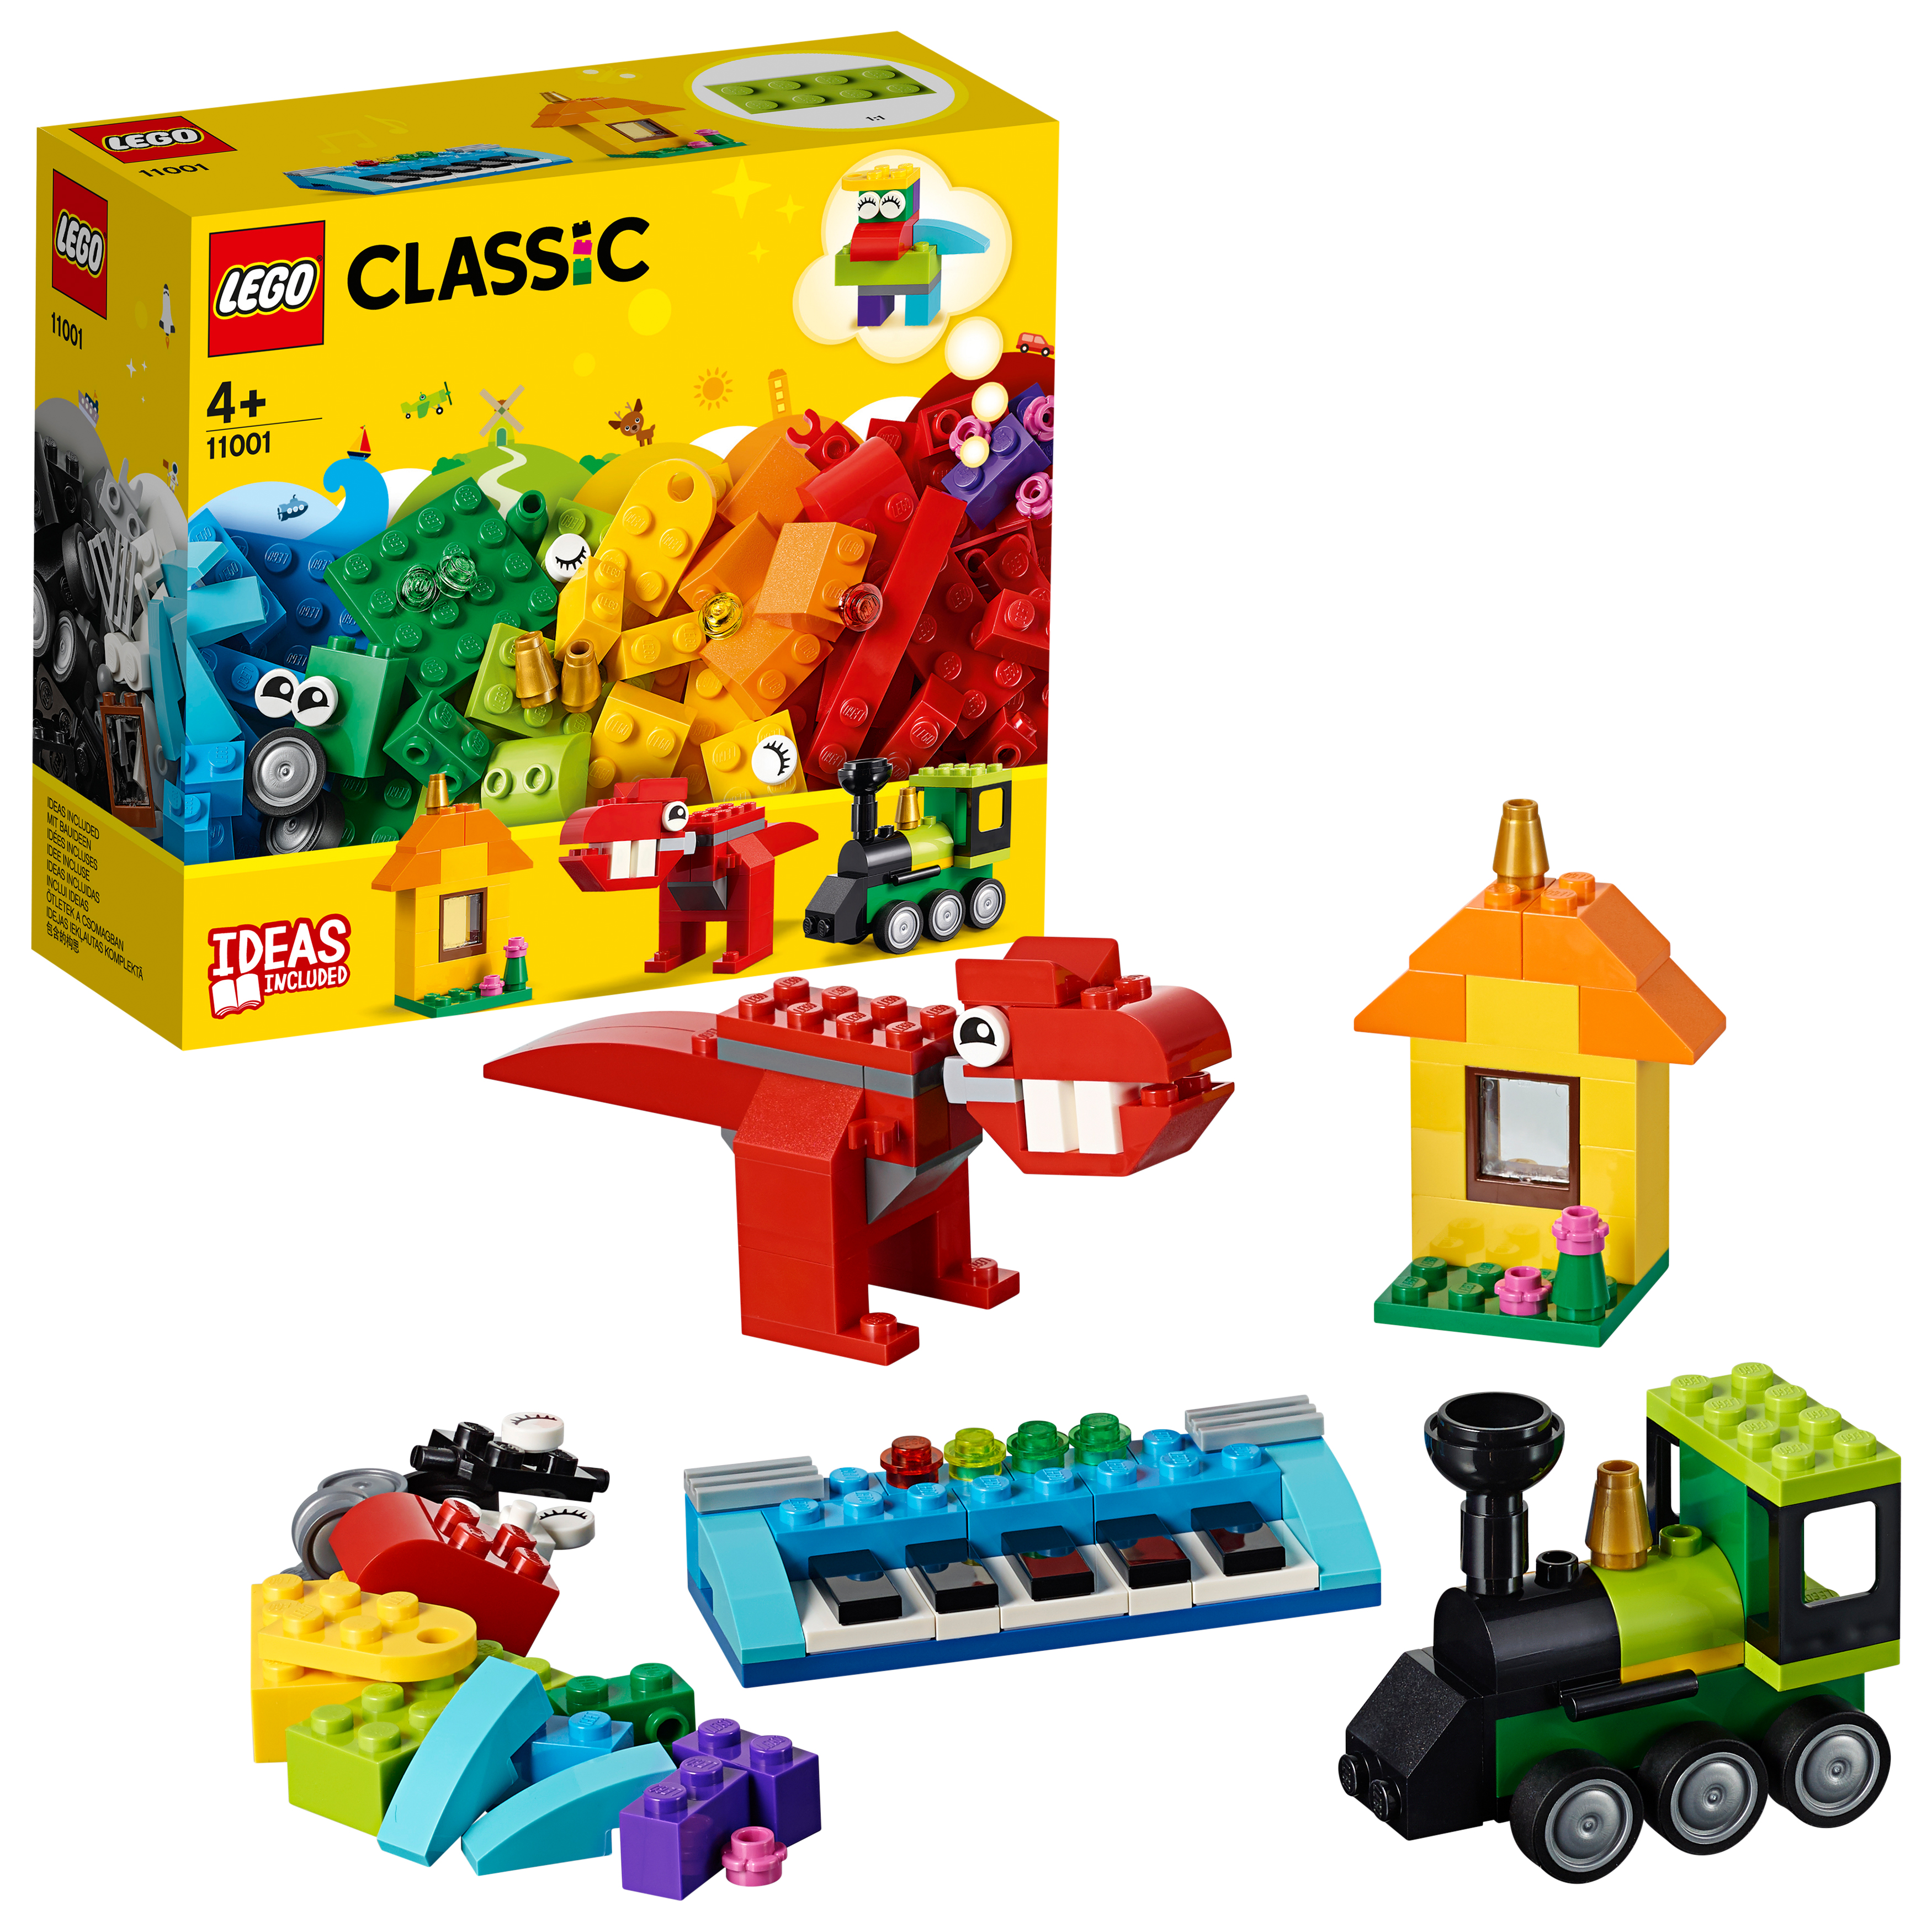 LEGO Classic - Bricks and Ideas (11001)